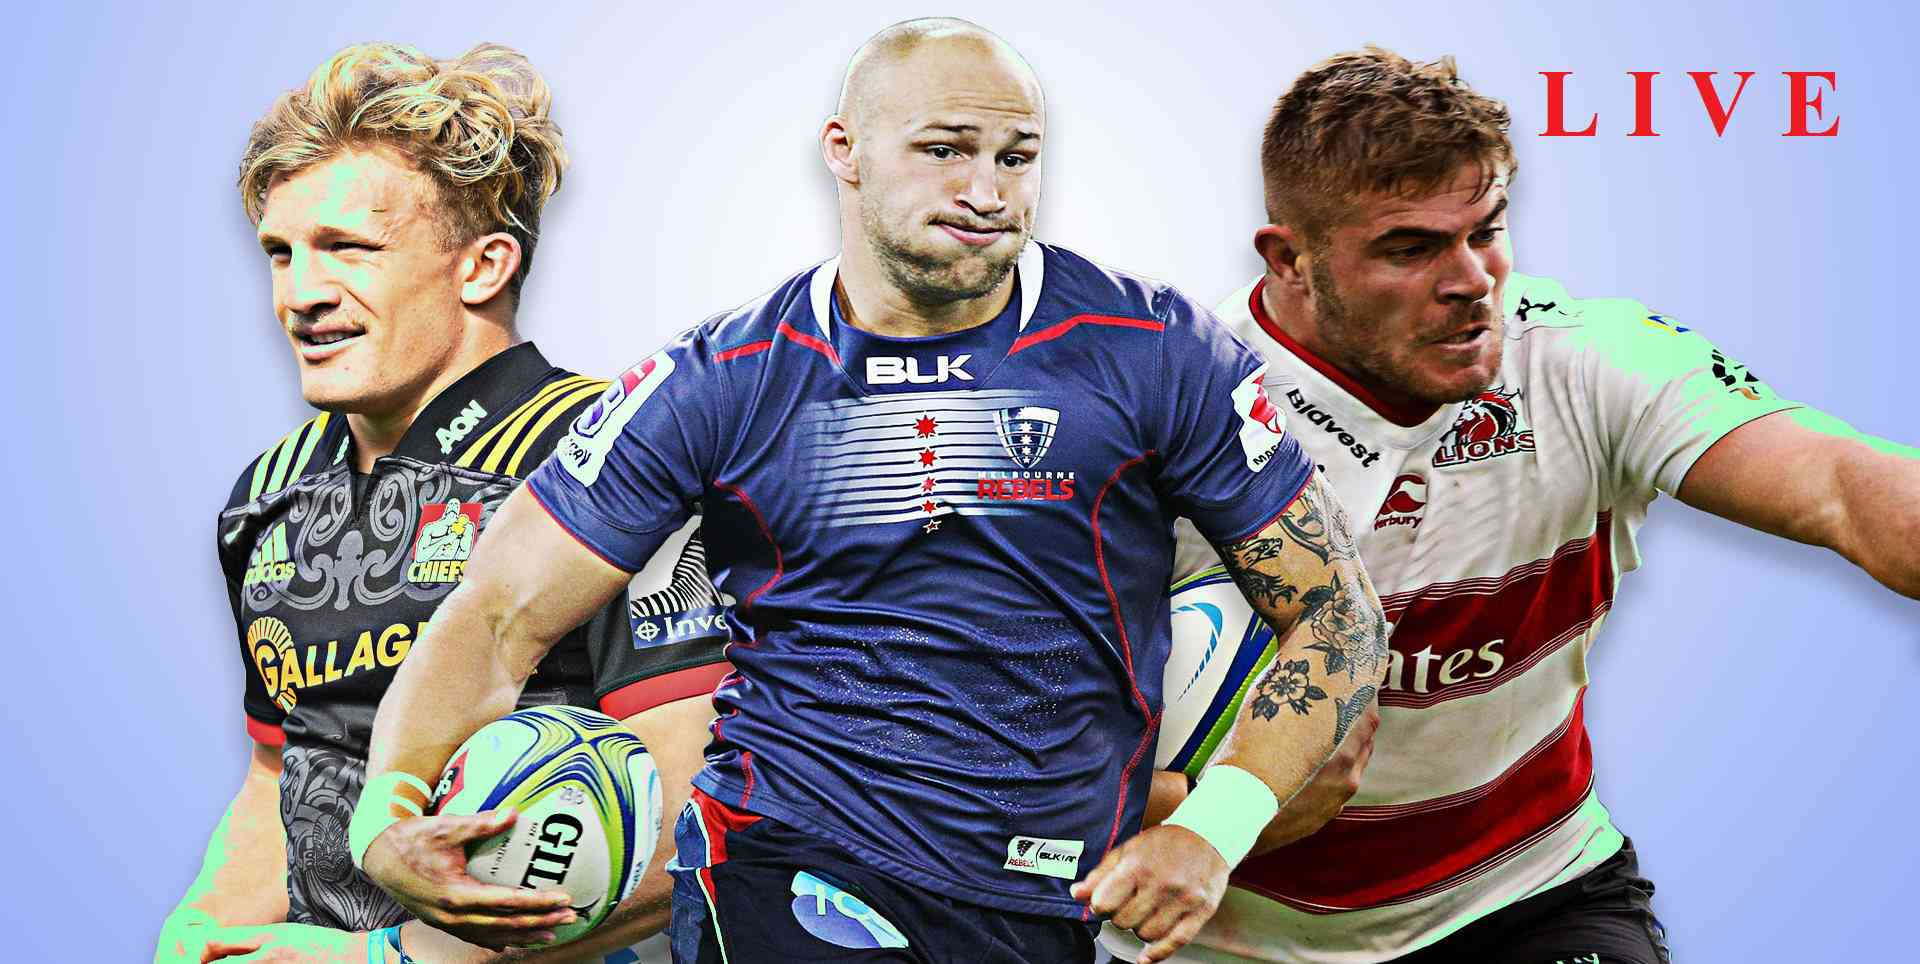 Live Rebels vs Crusaders Streaming